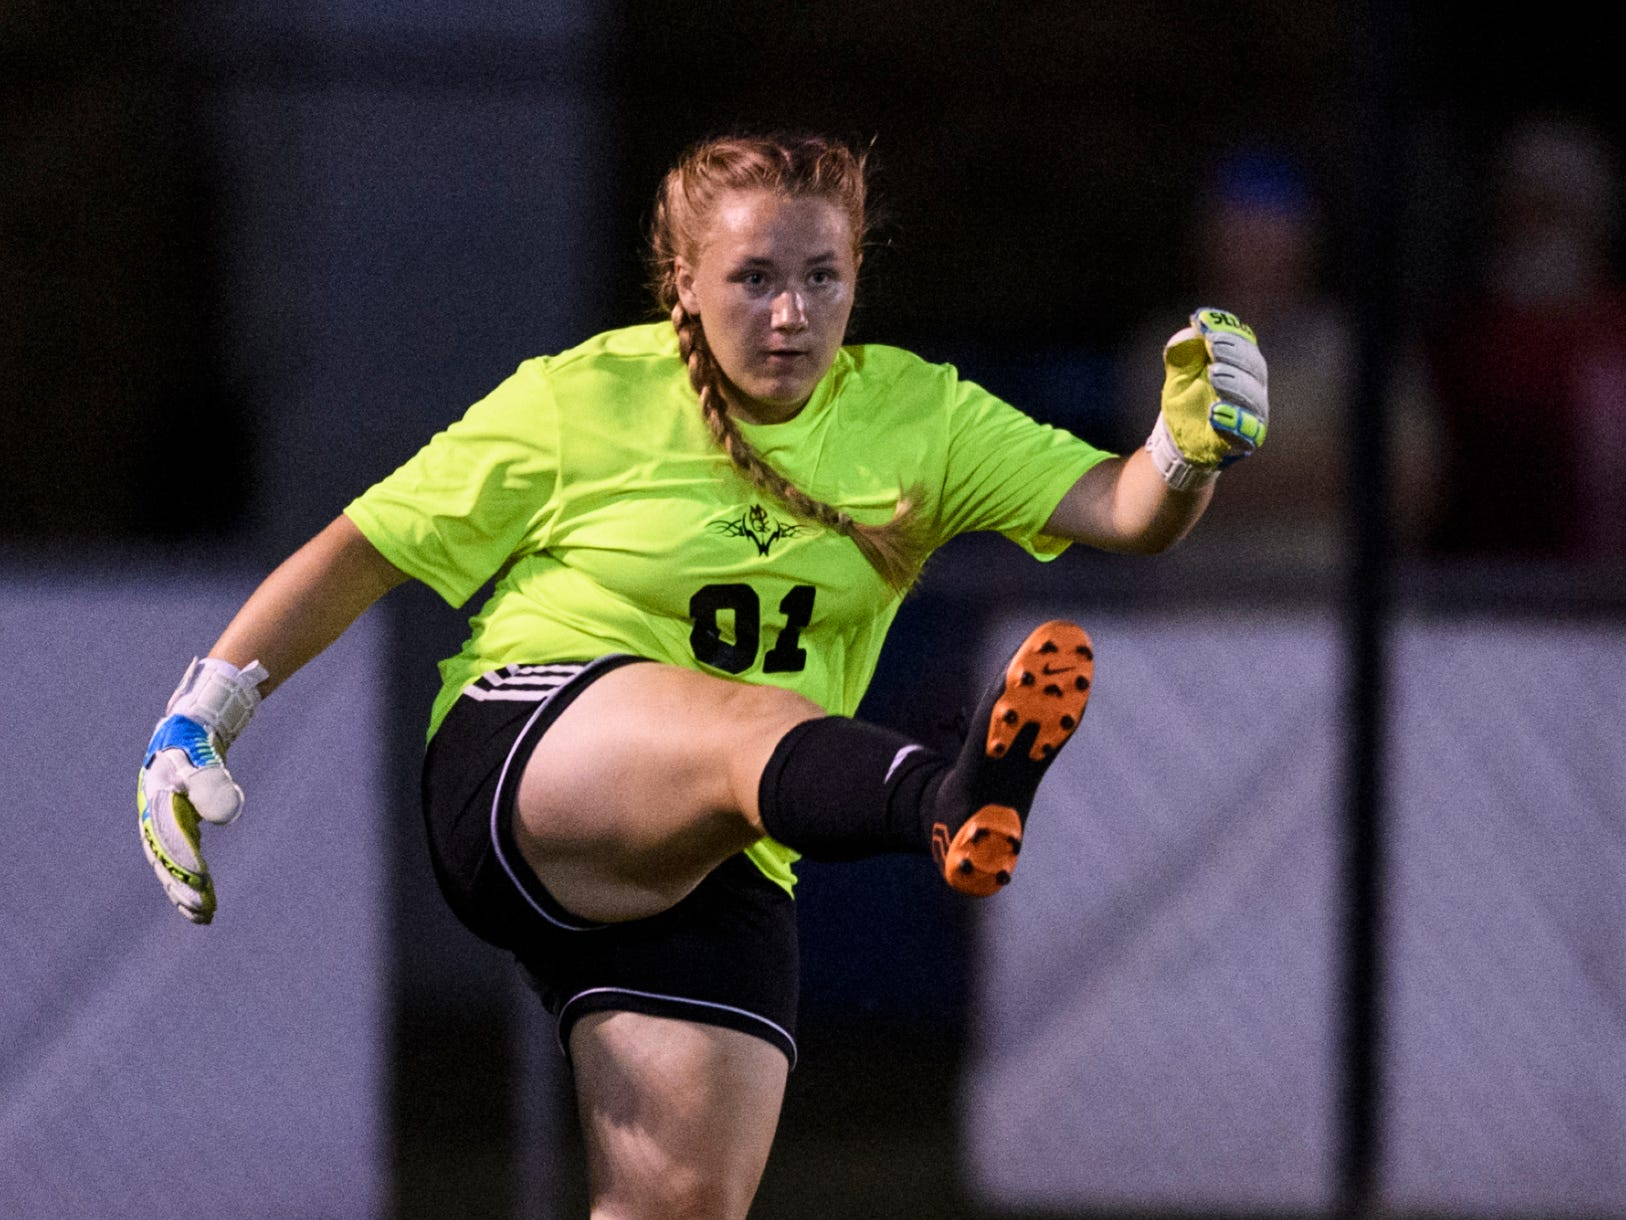 Mater Dei Goalie Sabrina Henderson (01) kicks the ball back into play during the match against the Memorial Tigers at the EVSC Soccer Fields in Evansville, Ind., Monday, Aug. 20, 2018. The Tigers defeated the Wildcats 4-0.